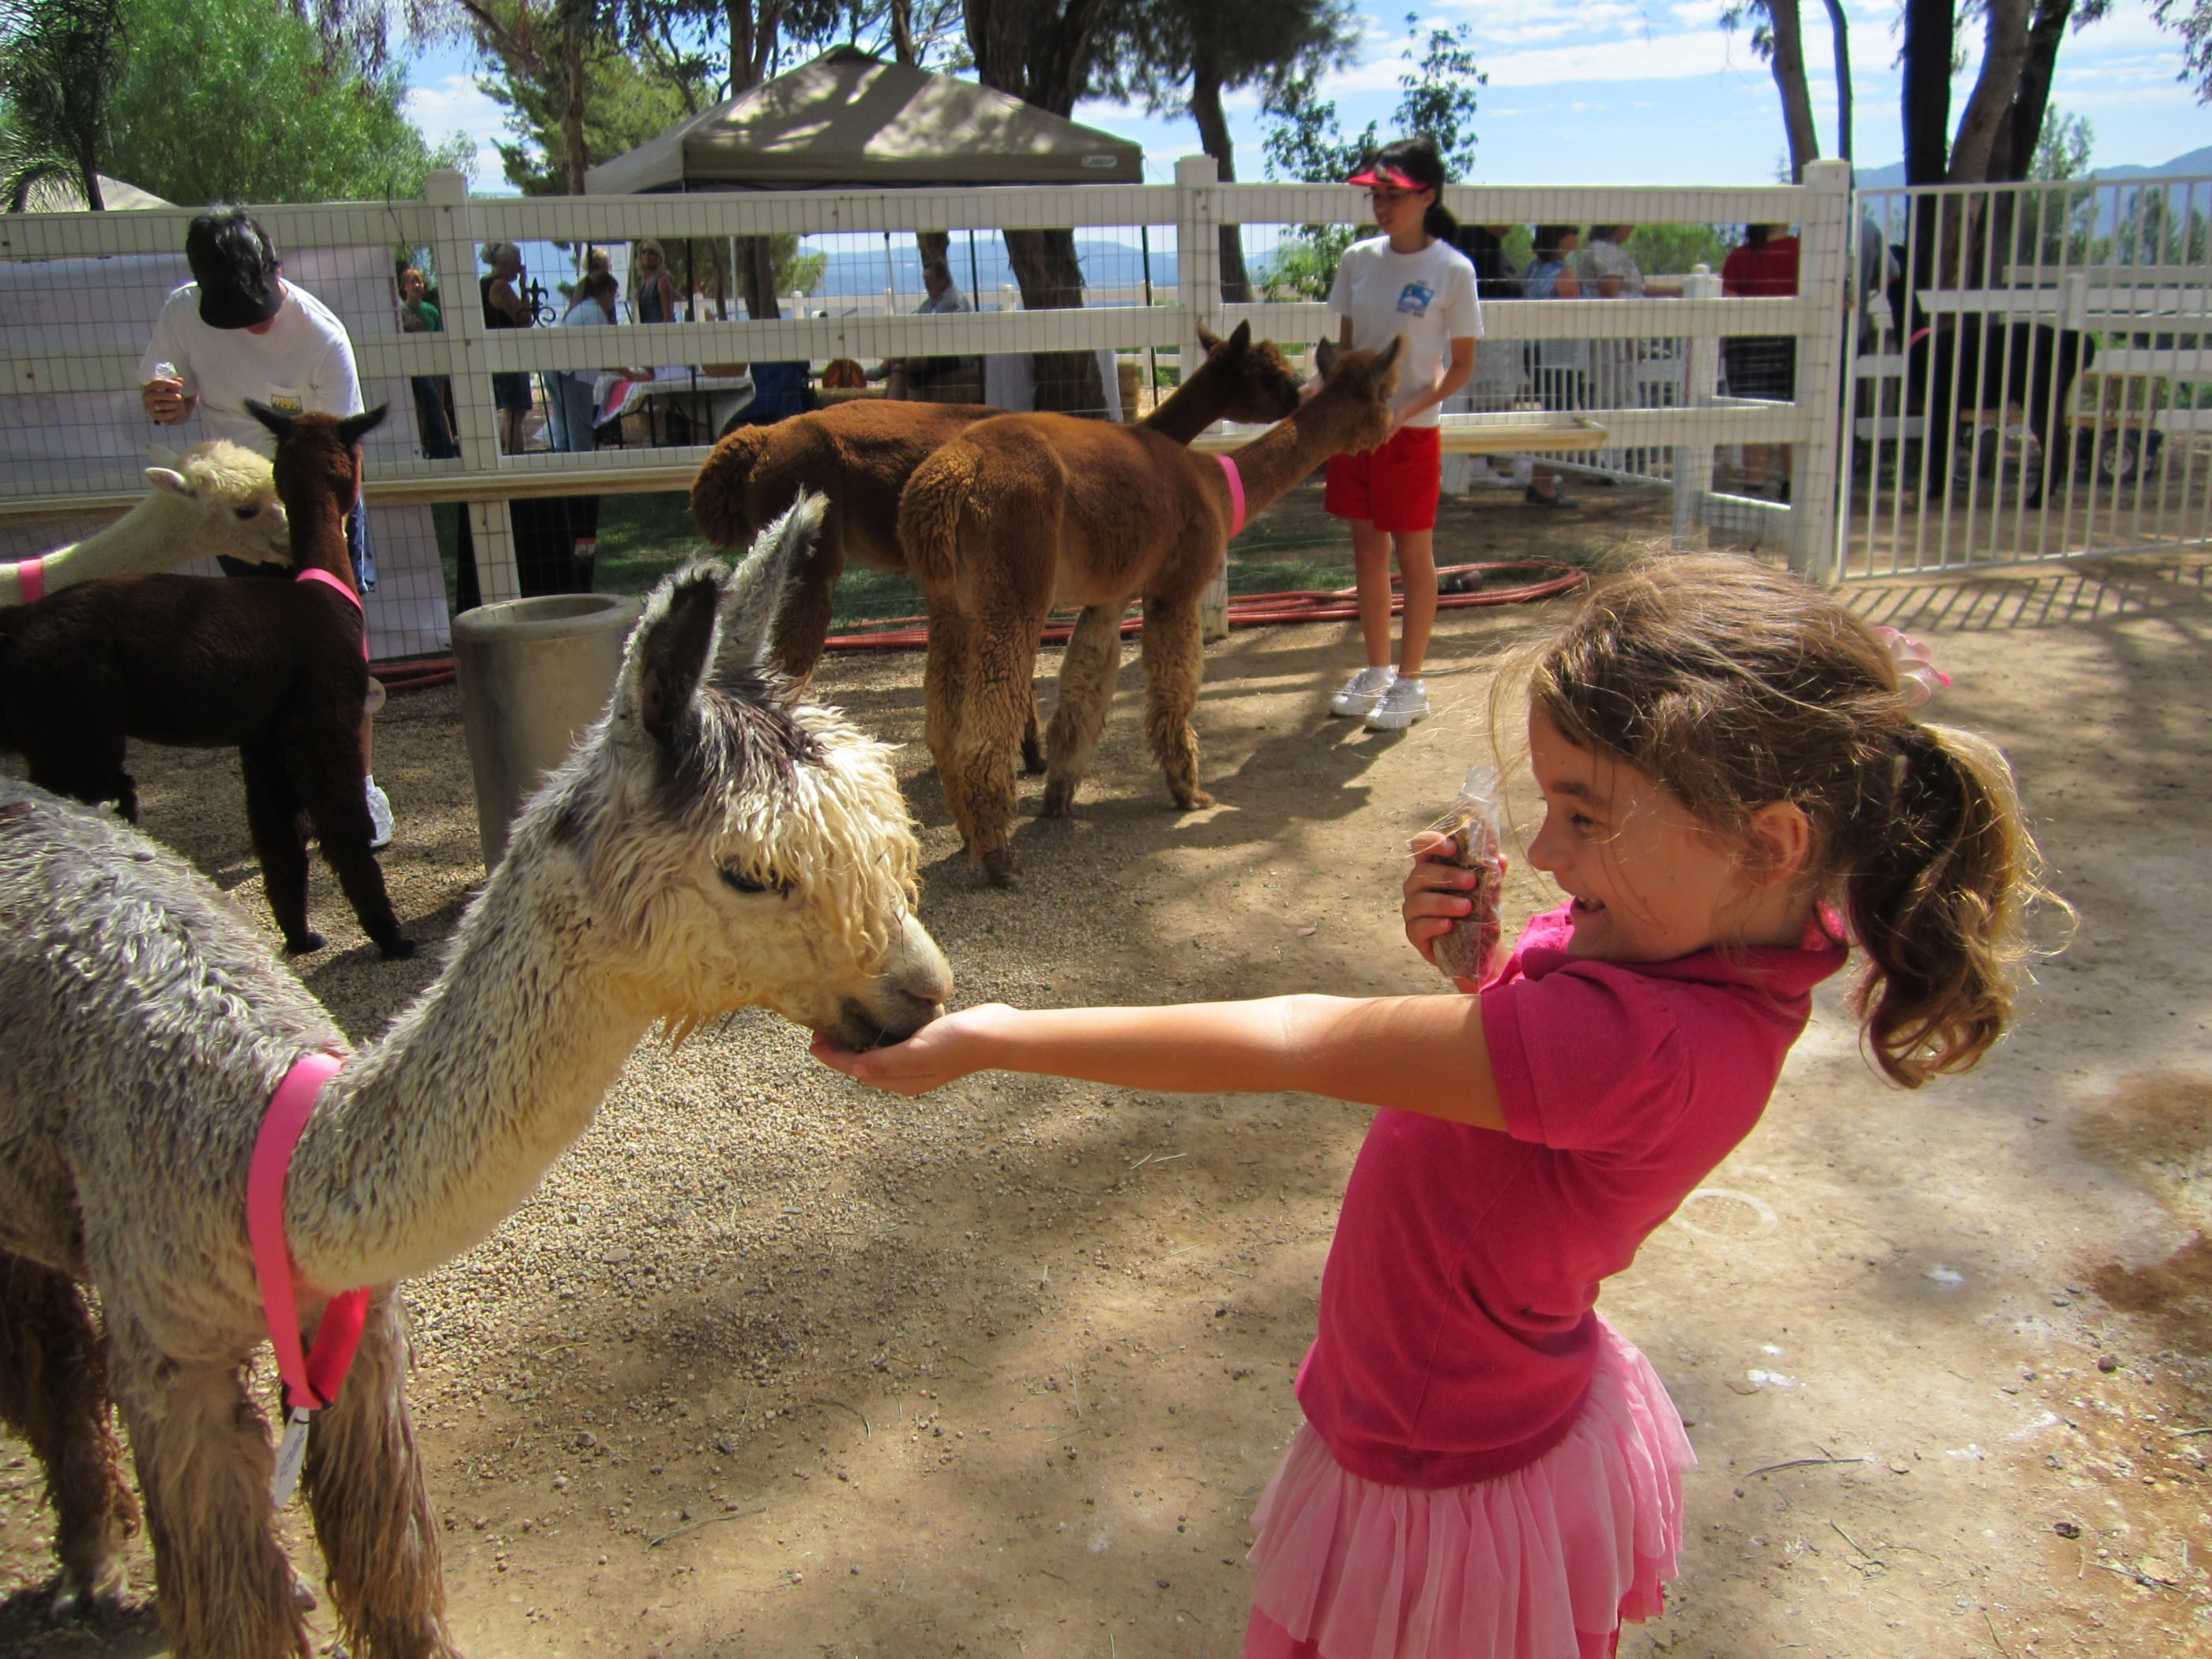 A little girl feeds a an alpaca in a corral with other people feeding alpacas in the background.